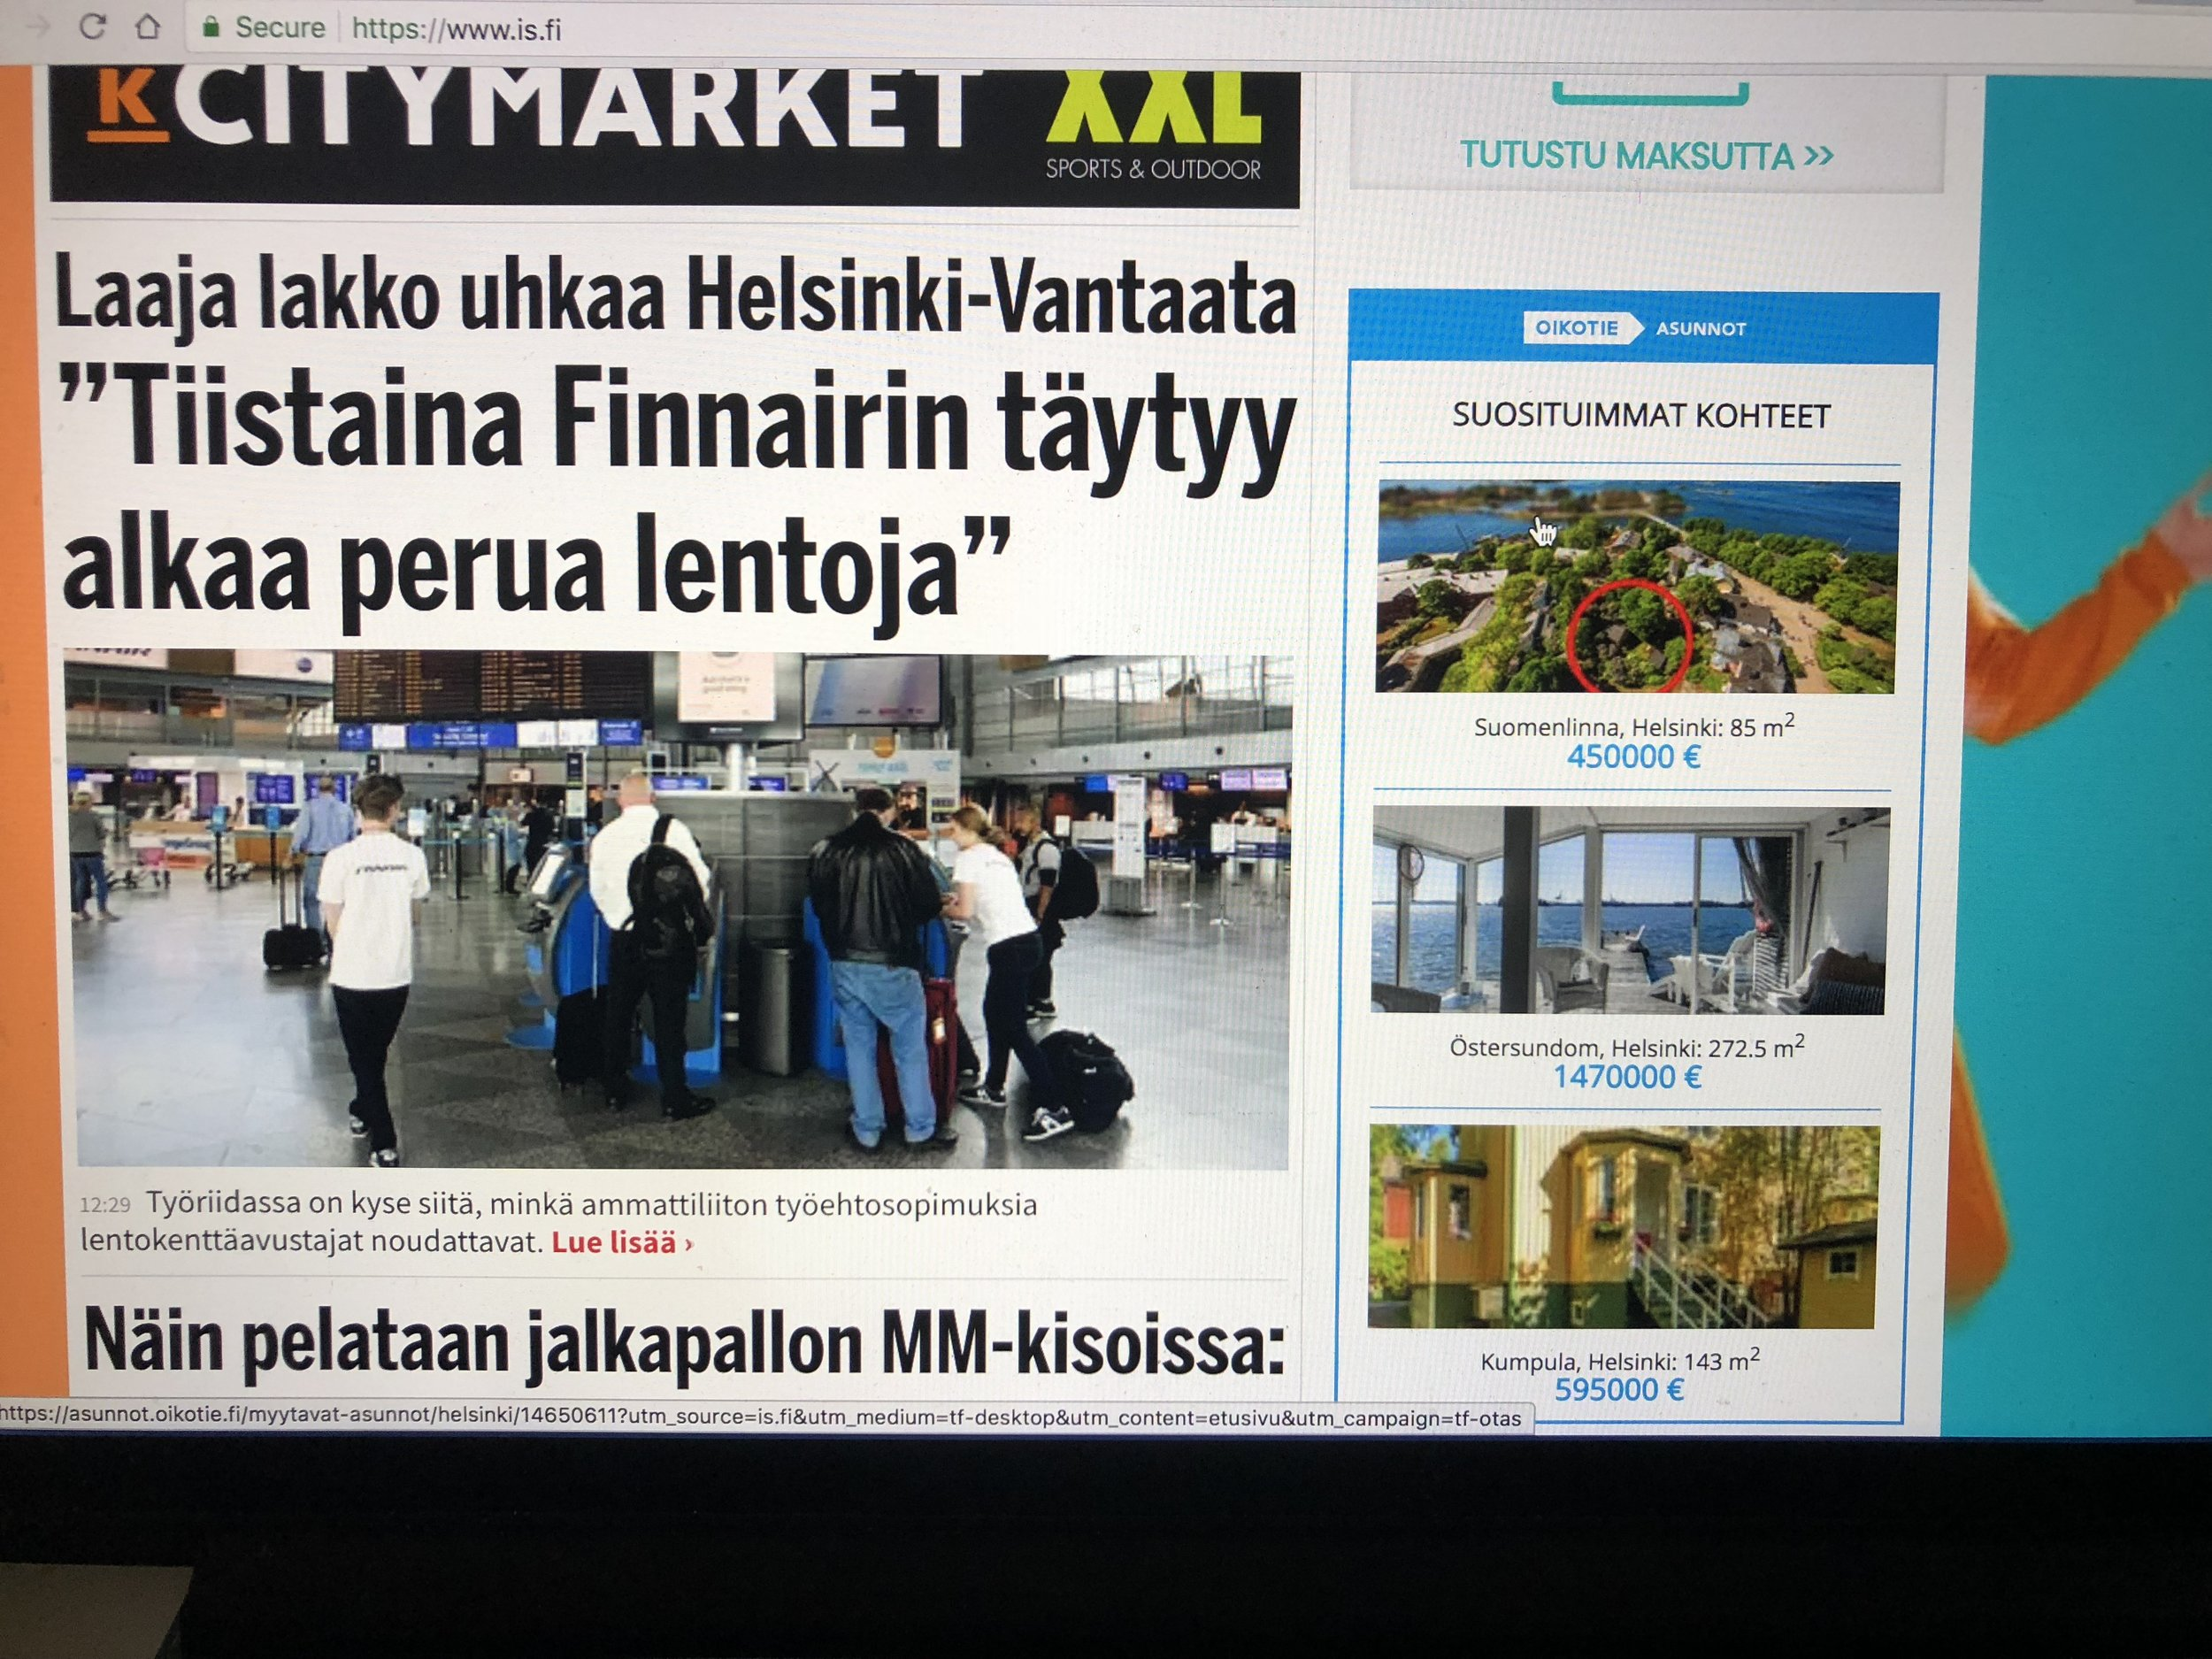 Finnish news article about Finnair's possible flight cancellations